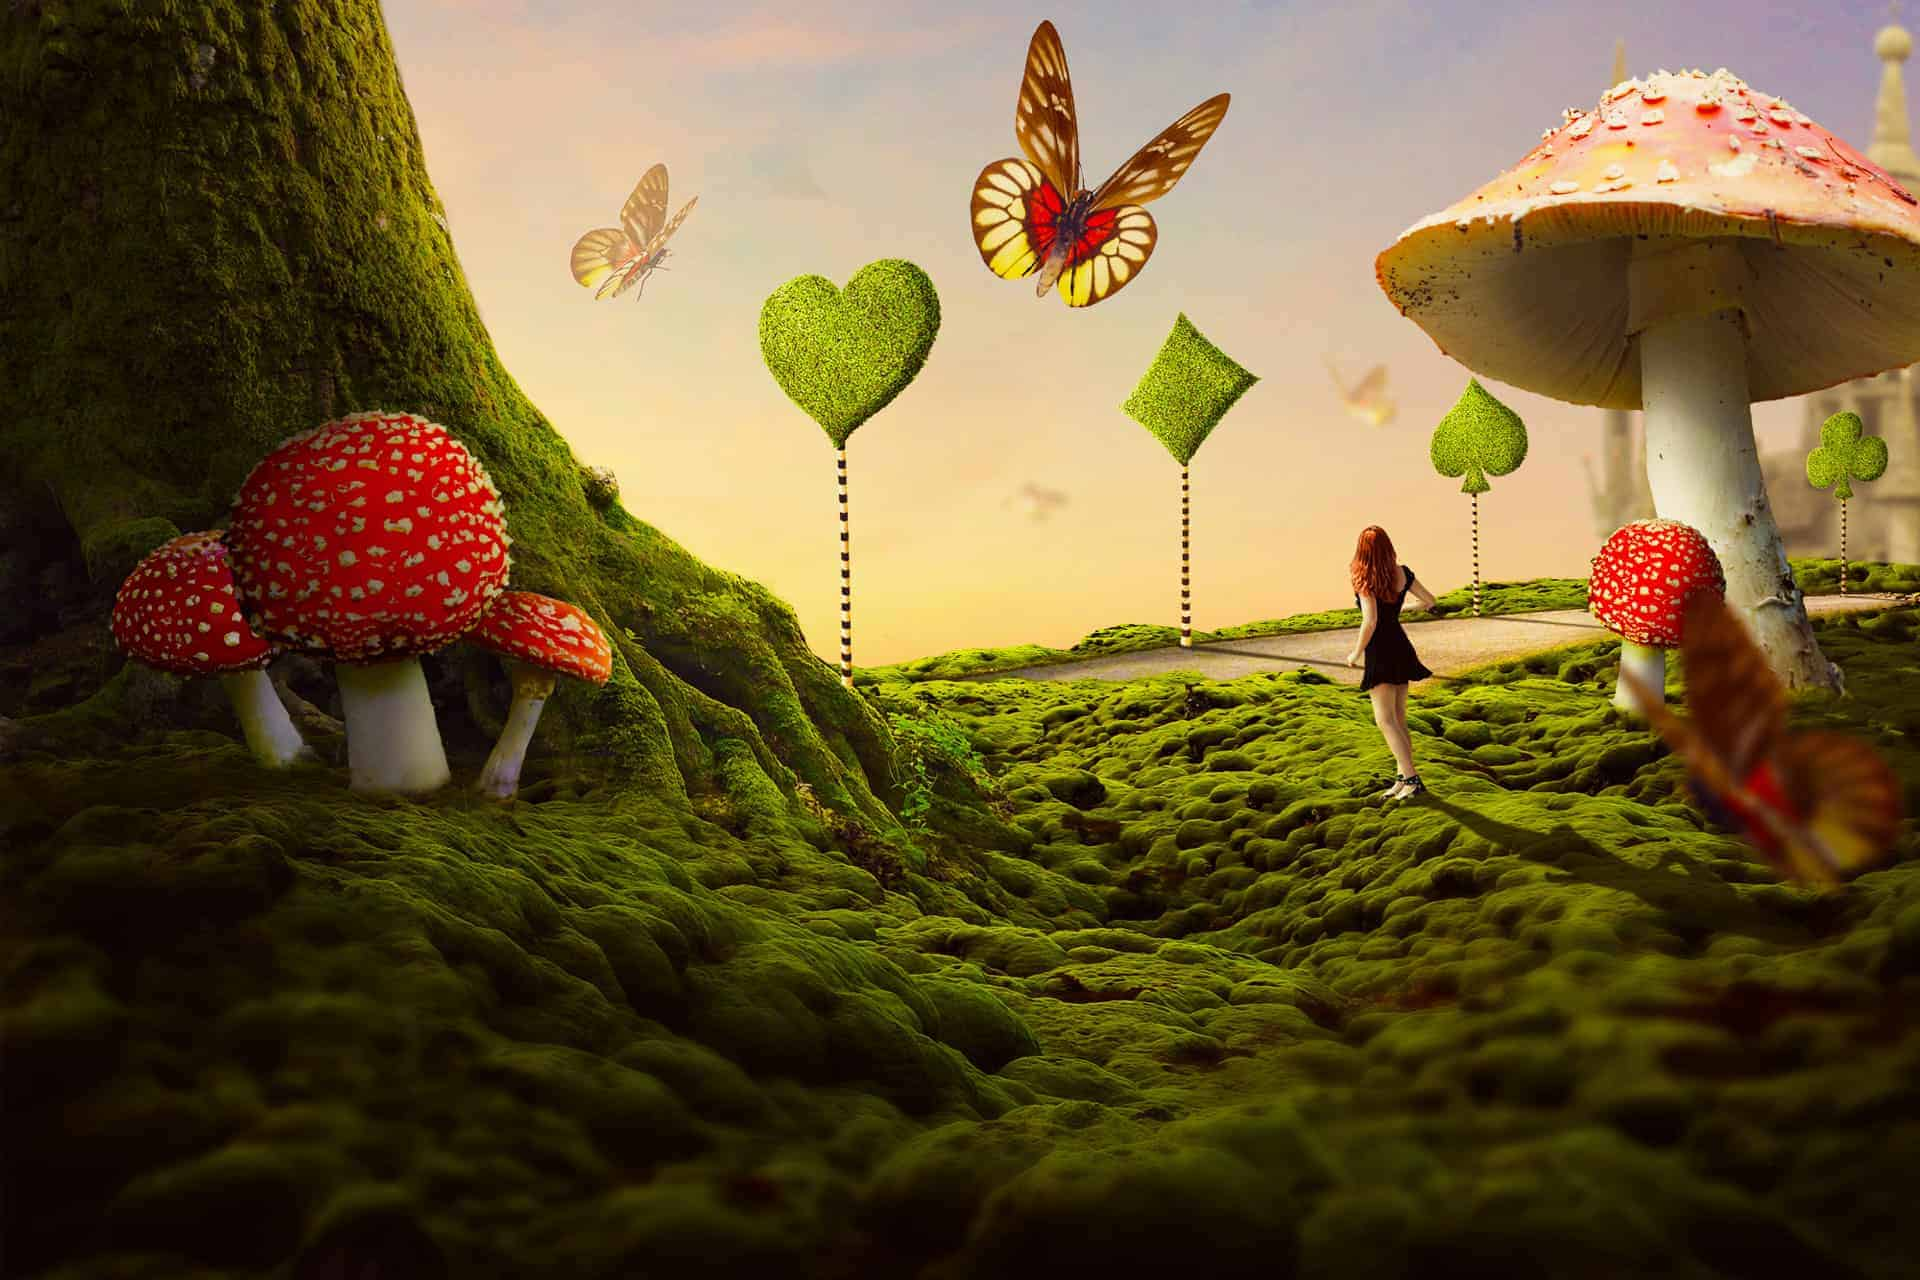 How to Create a Wonderland Photo Manipulation with Photoshop